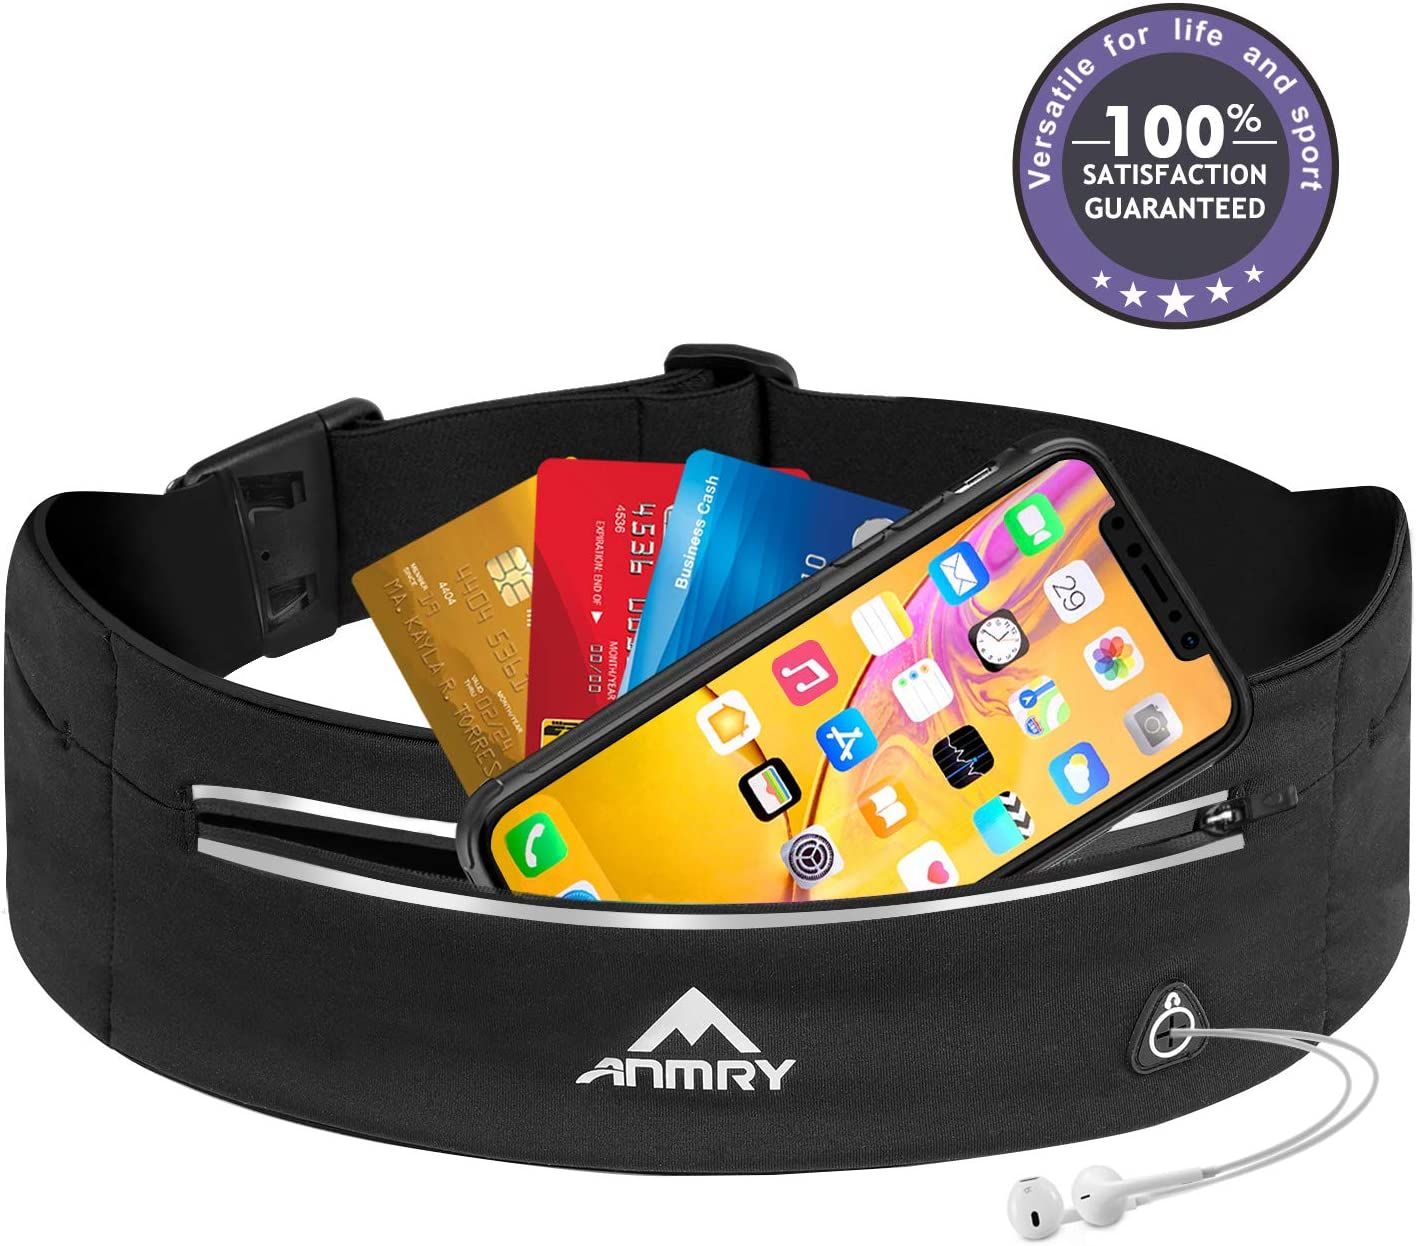 ANMRY Running Pouch Belt,Runner Waist Pack for Woman and Men – Running Belt for Any iPhone Phone Size – Runners Hiking Climbing Fanny Pack – Adjustable Running Pouch 3 Pockets Black